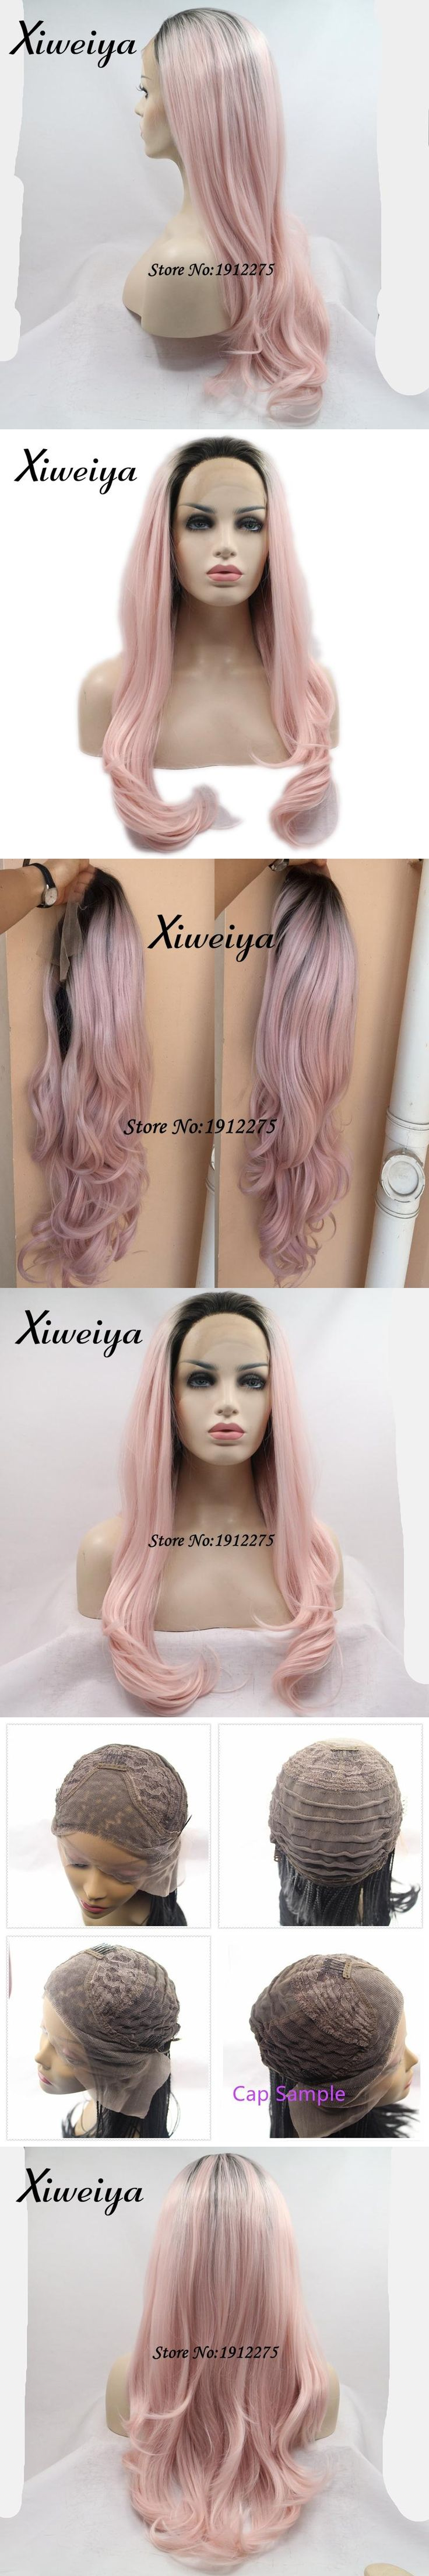 Xiweiya Heat resistant synthetic lace front wig for women pink dark root nature straight half hand tied soft long wig drag queen